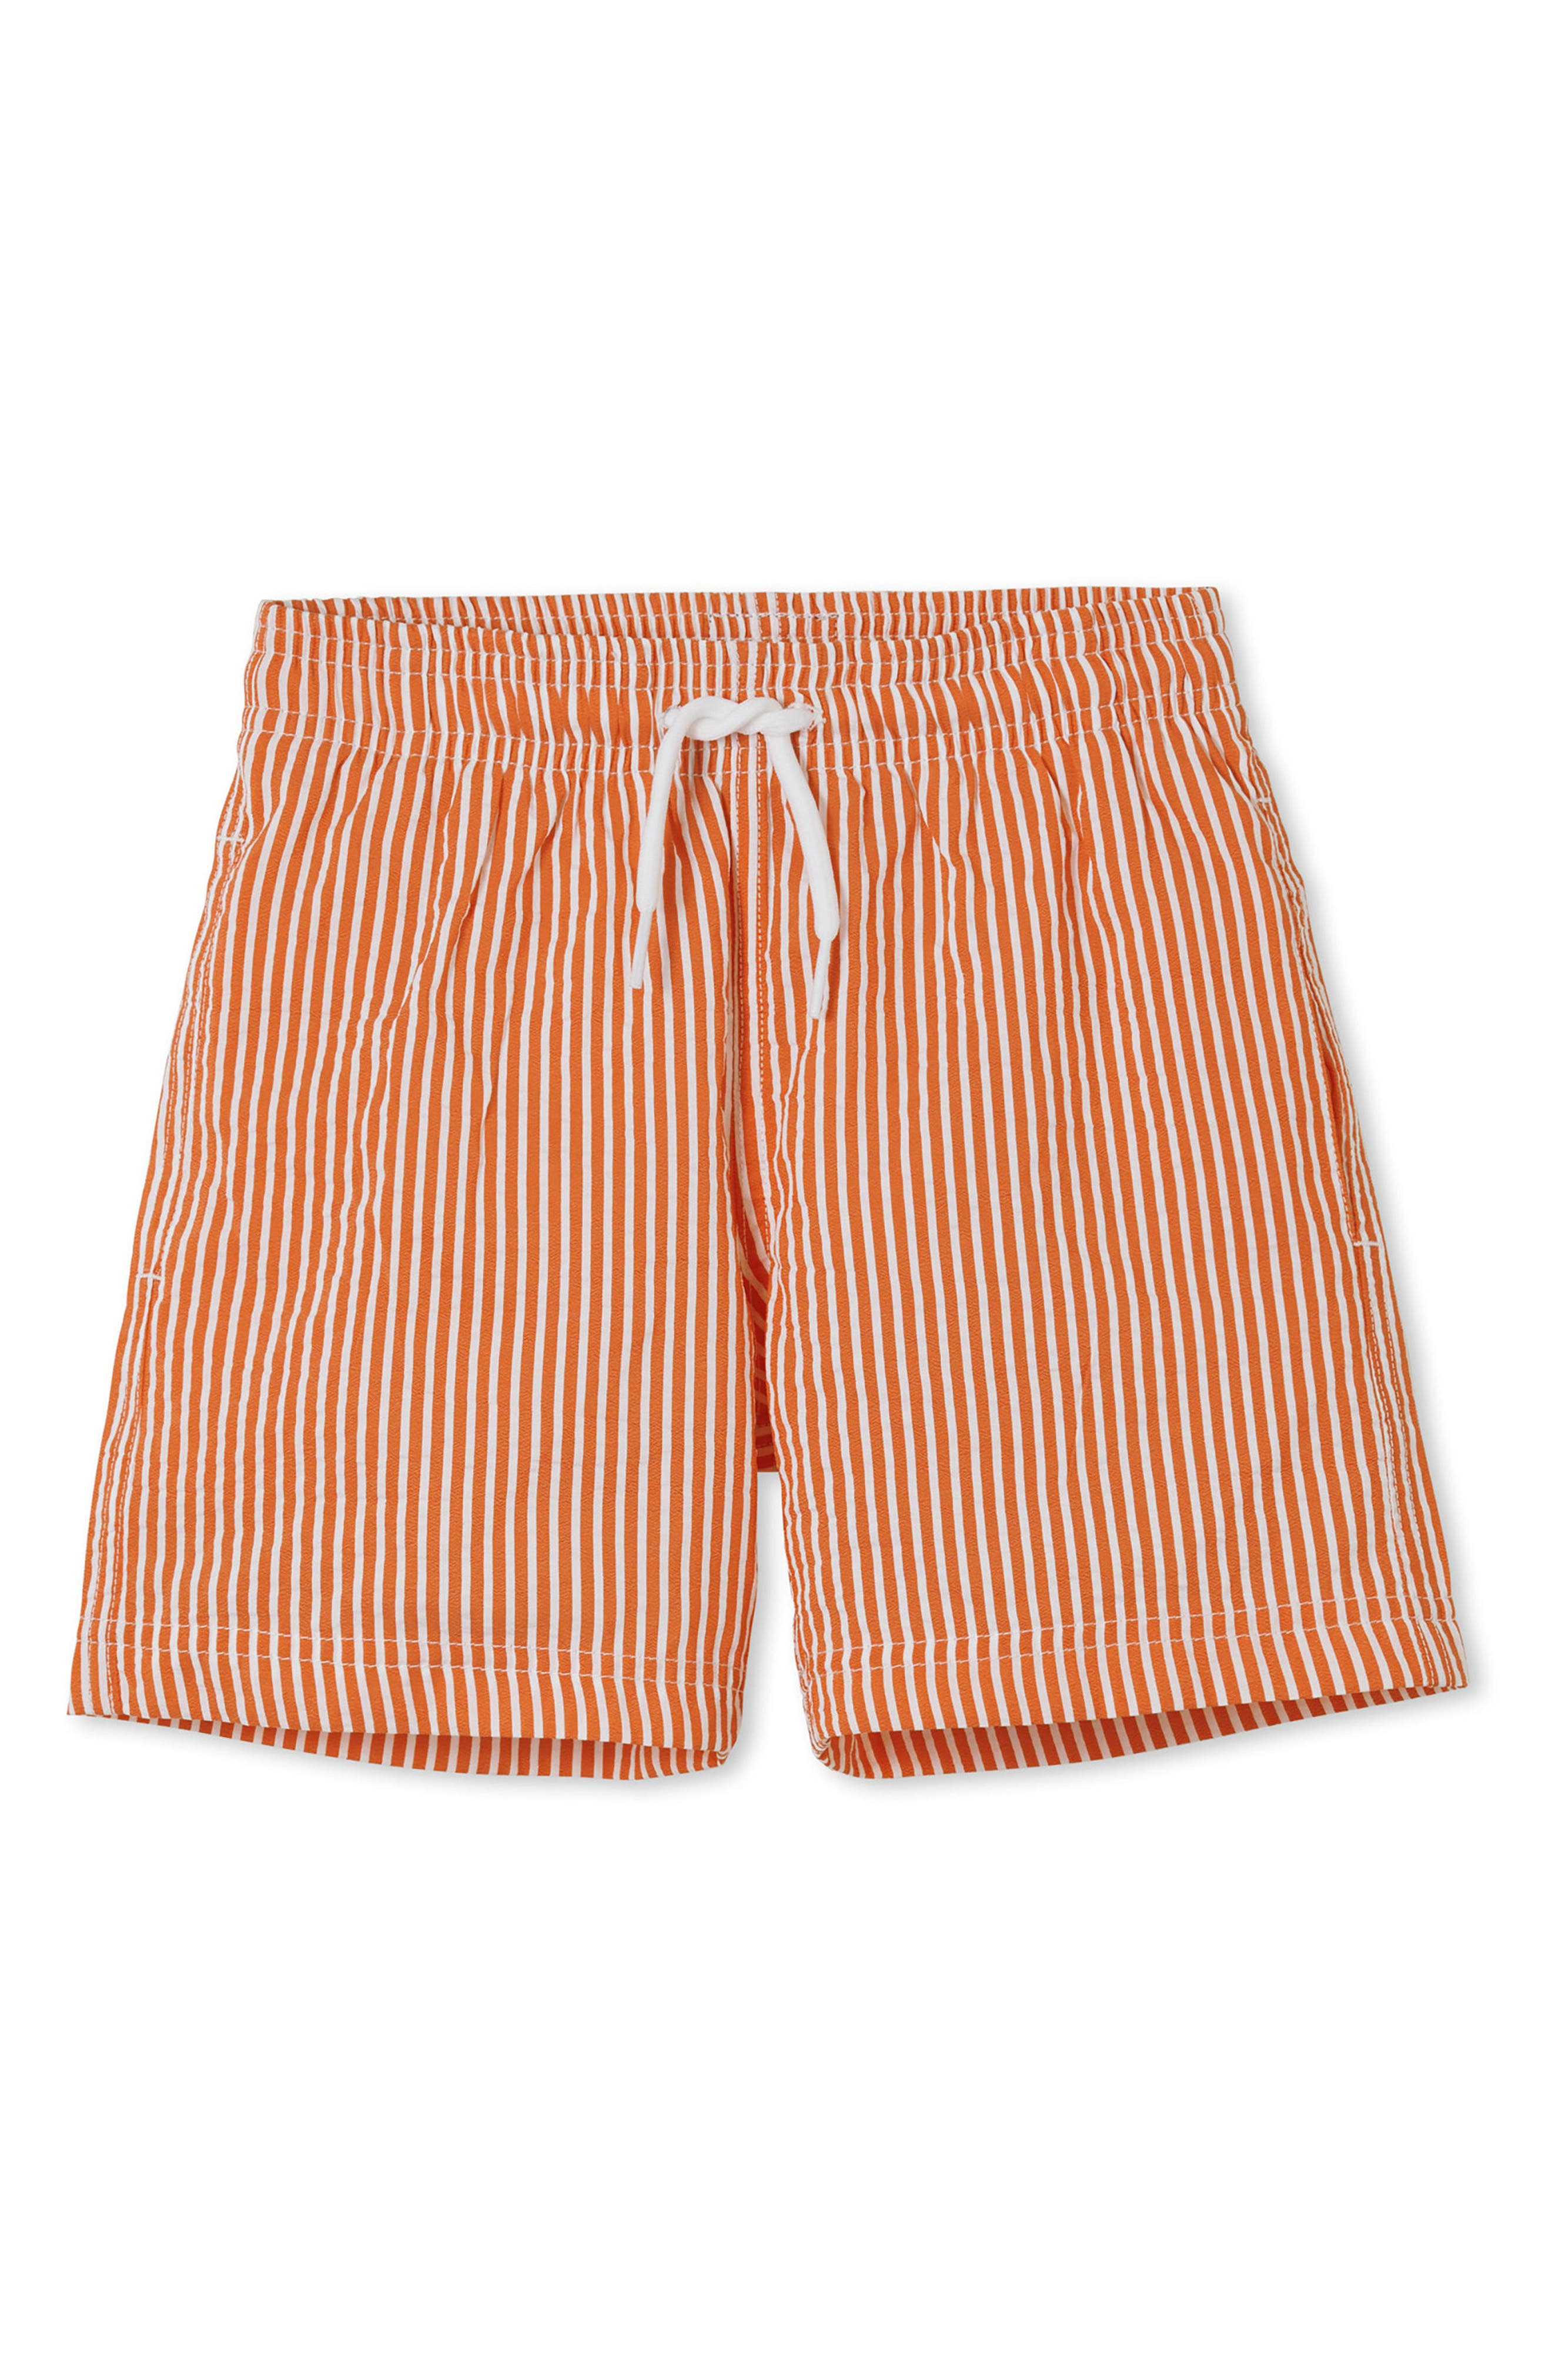 Orange Stripe Swim Trunks,                             Main thumbnail 1, color,                             Orange